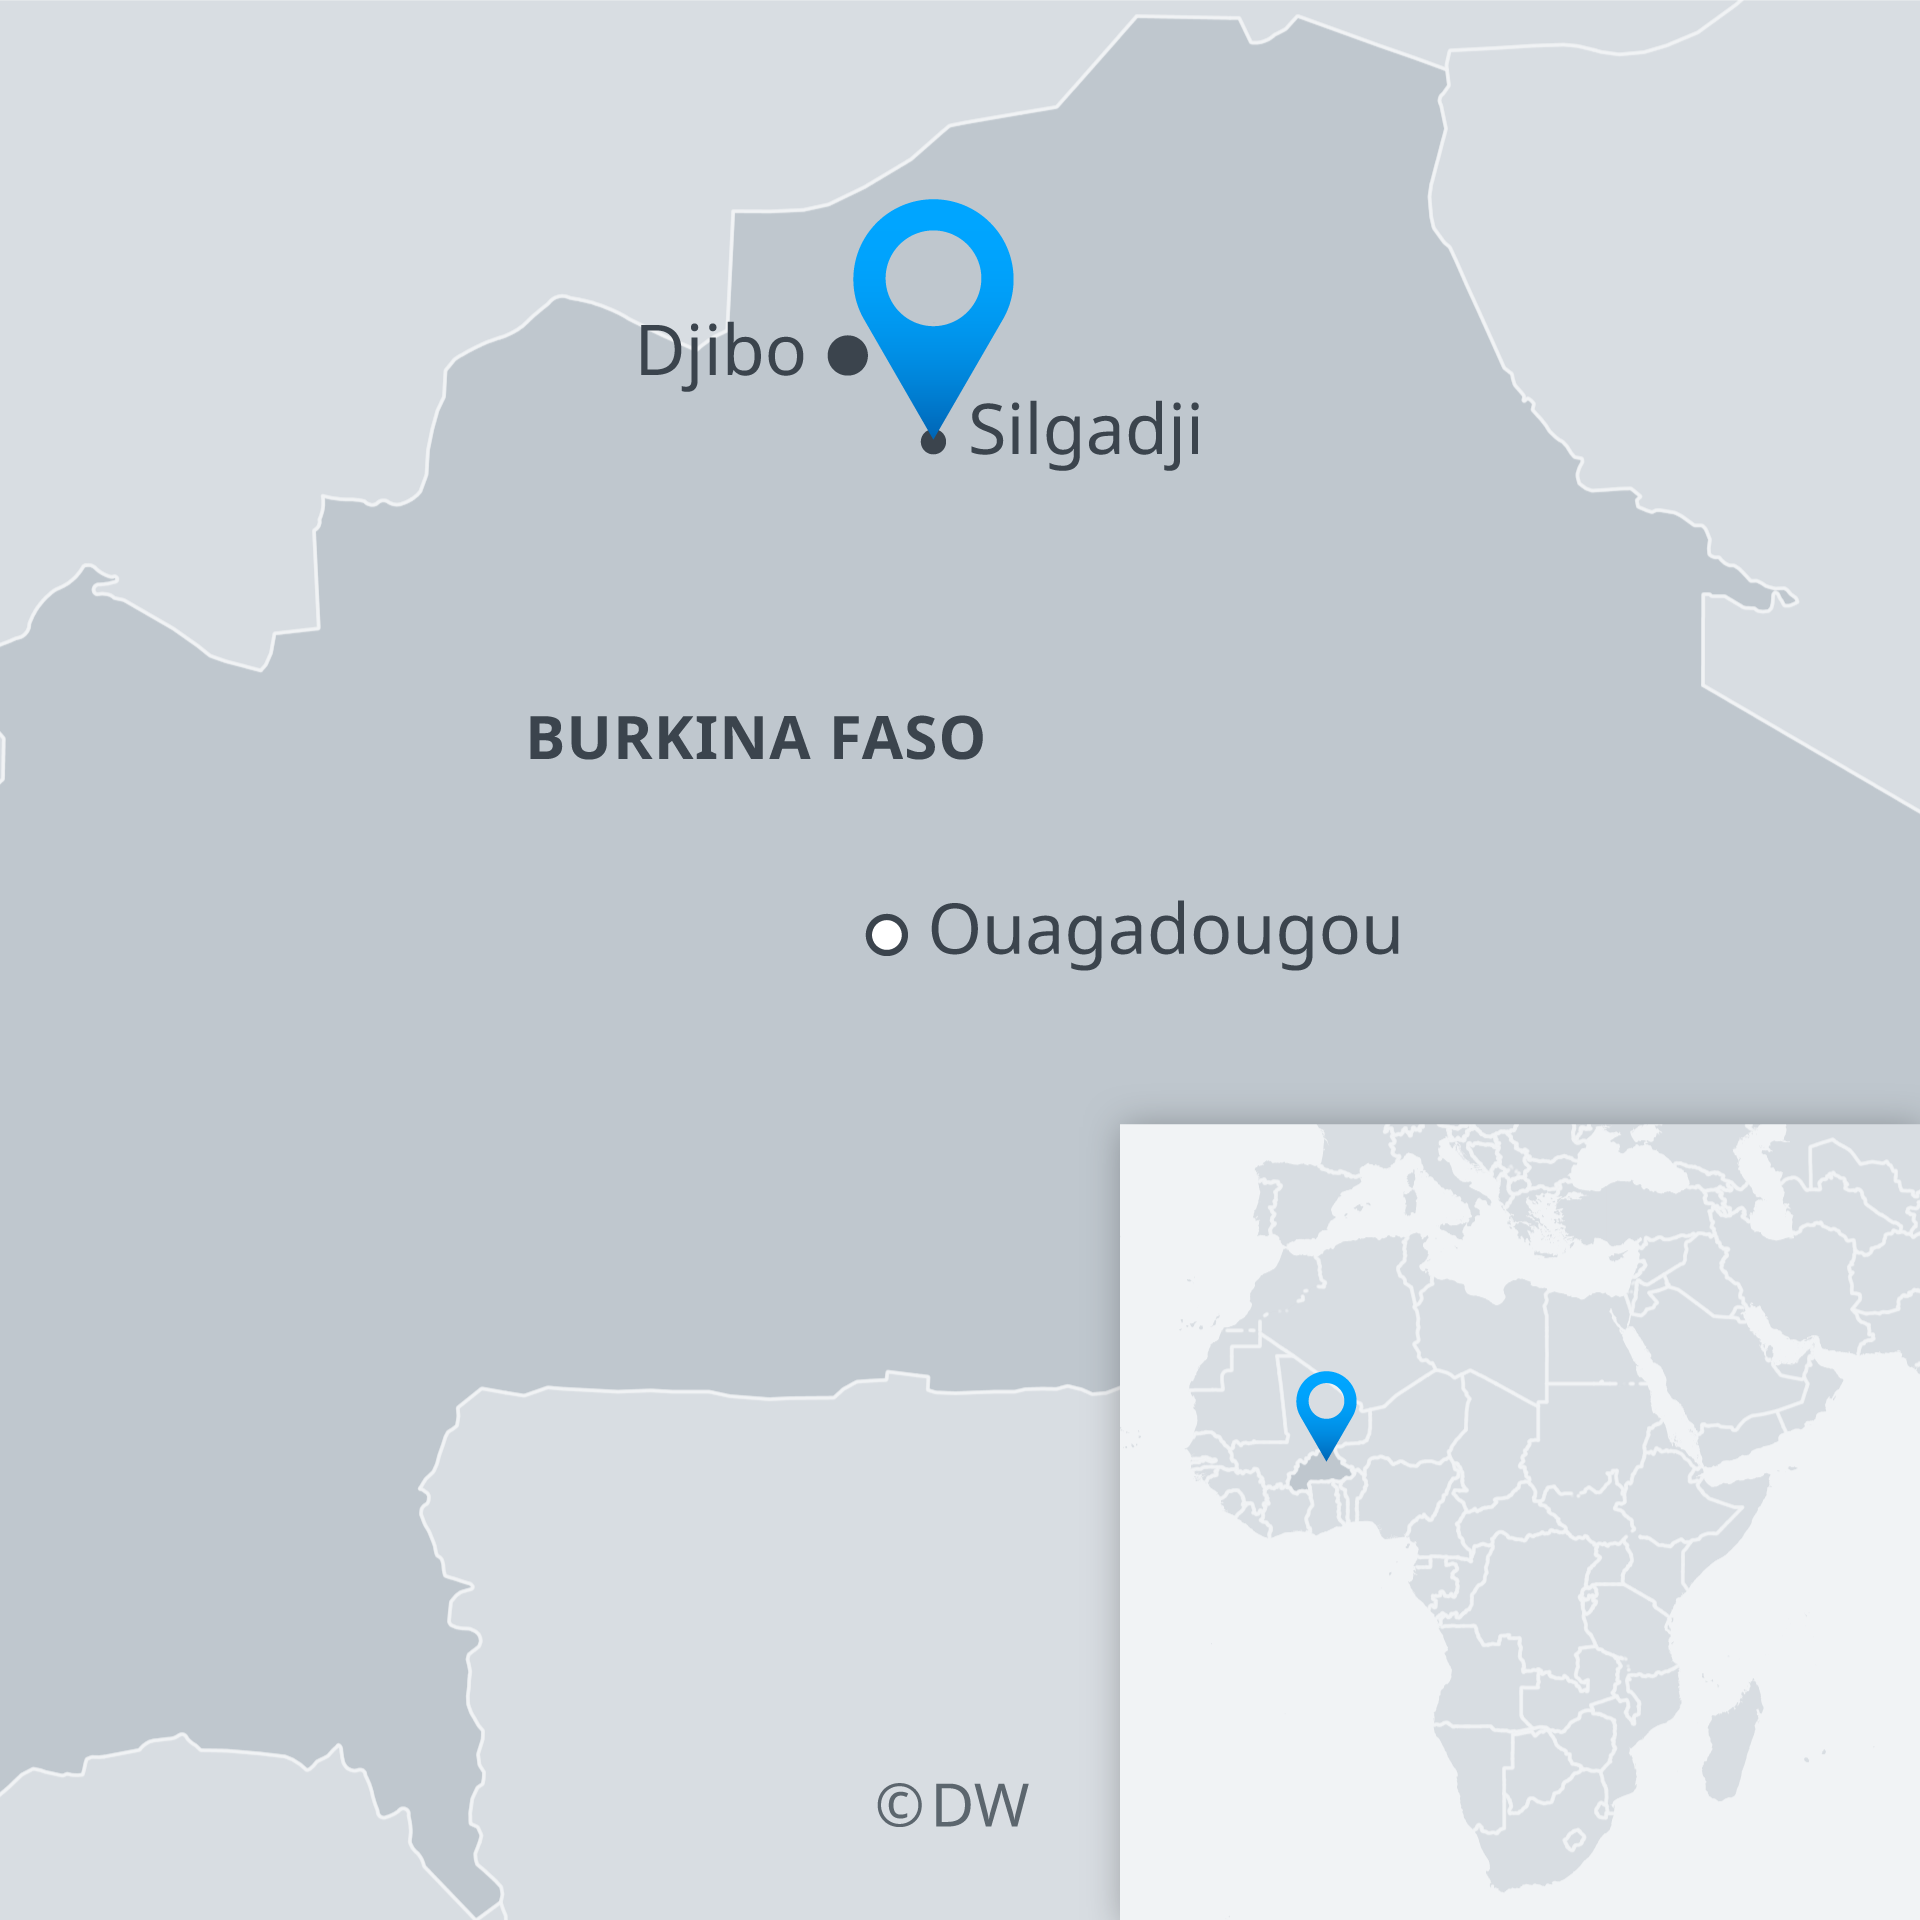 At least 5 killed in suspected jihadist attack on Burkina Faso church